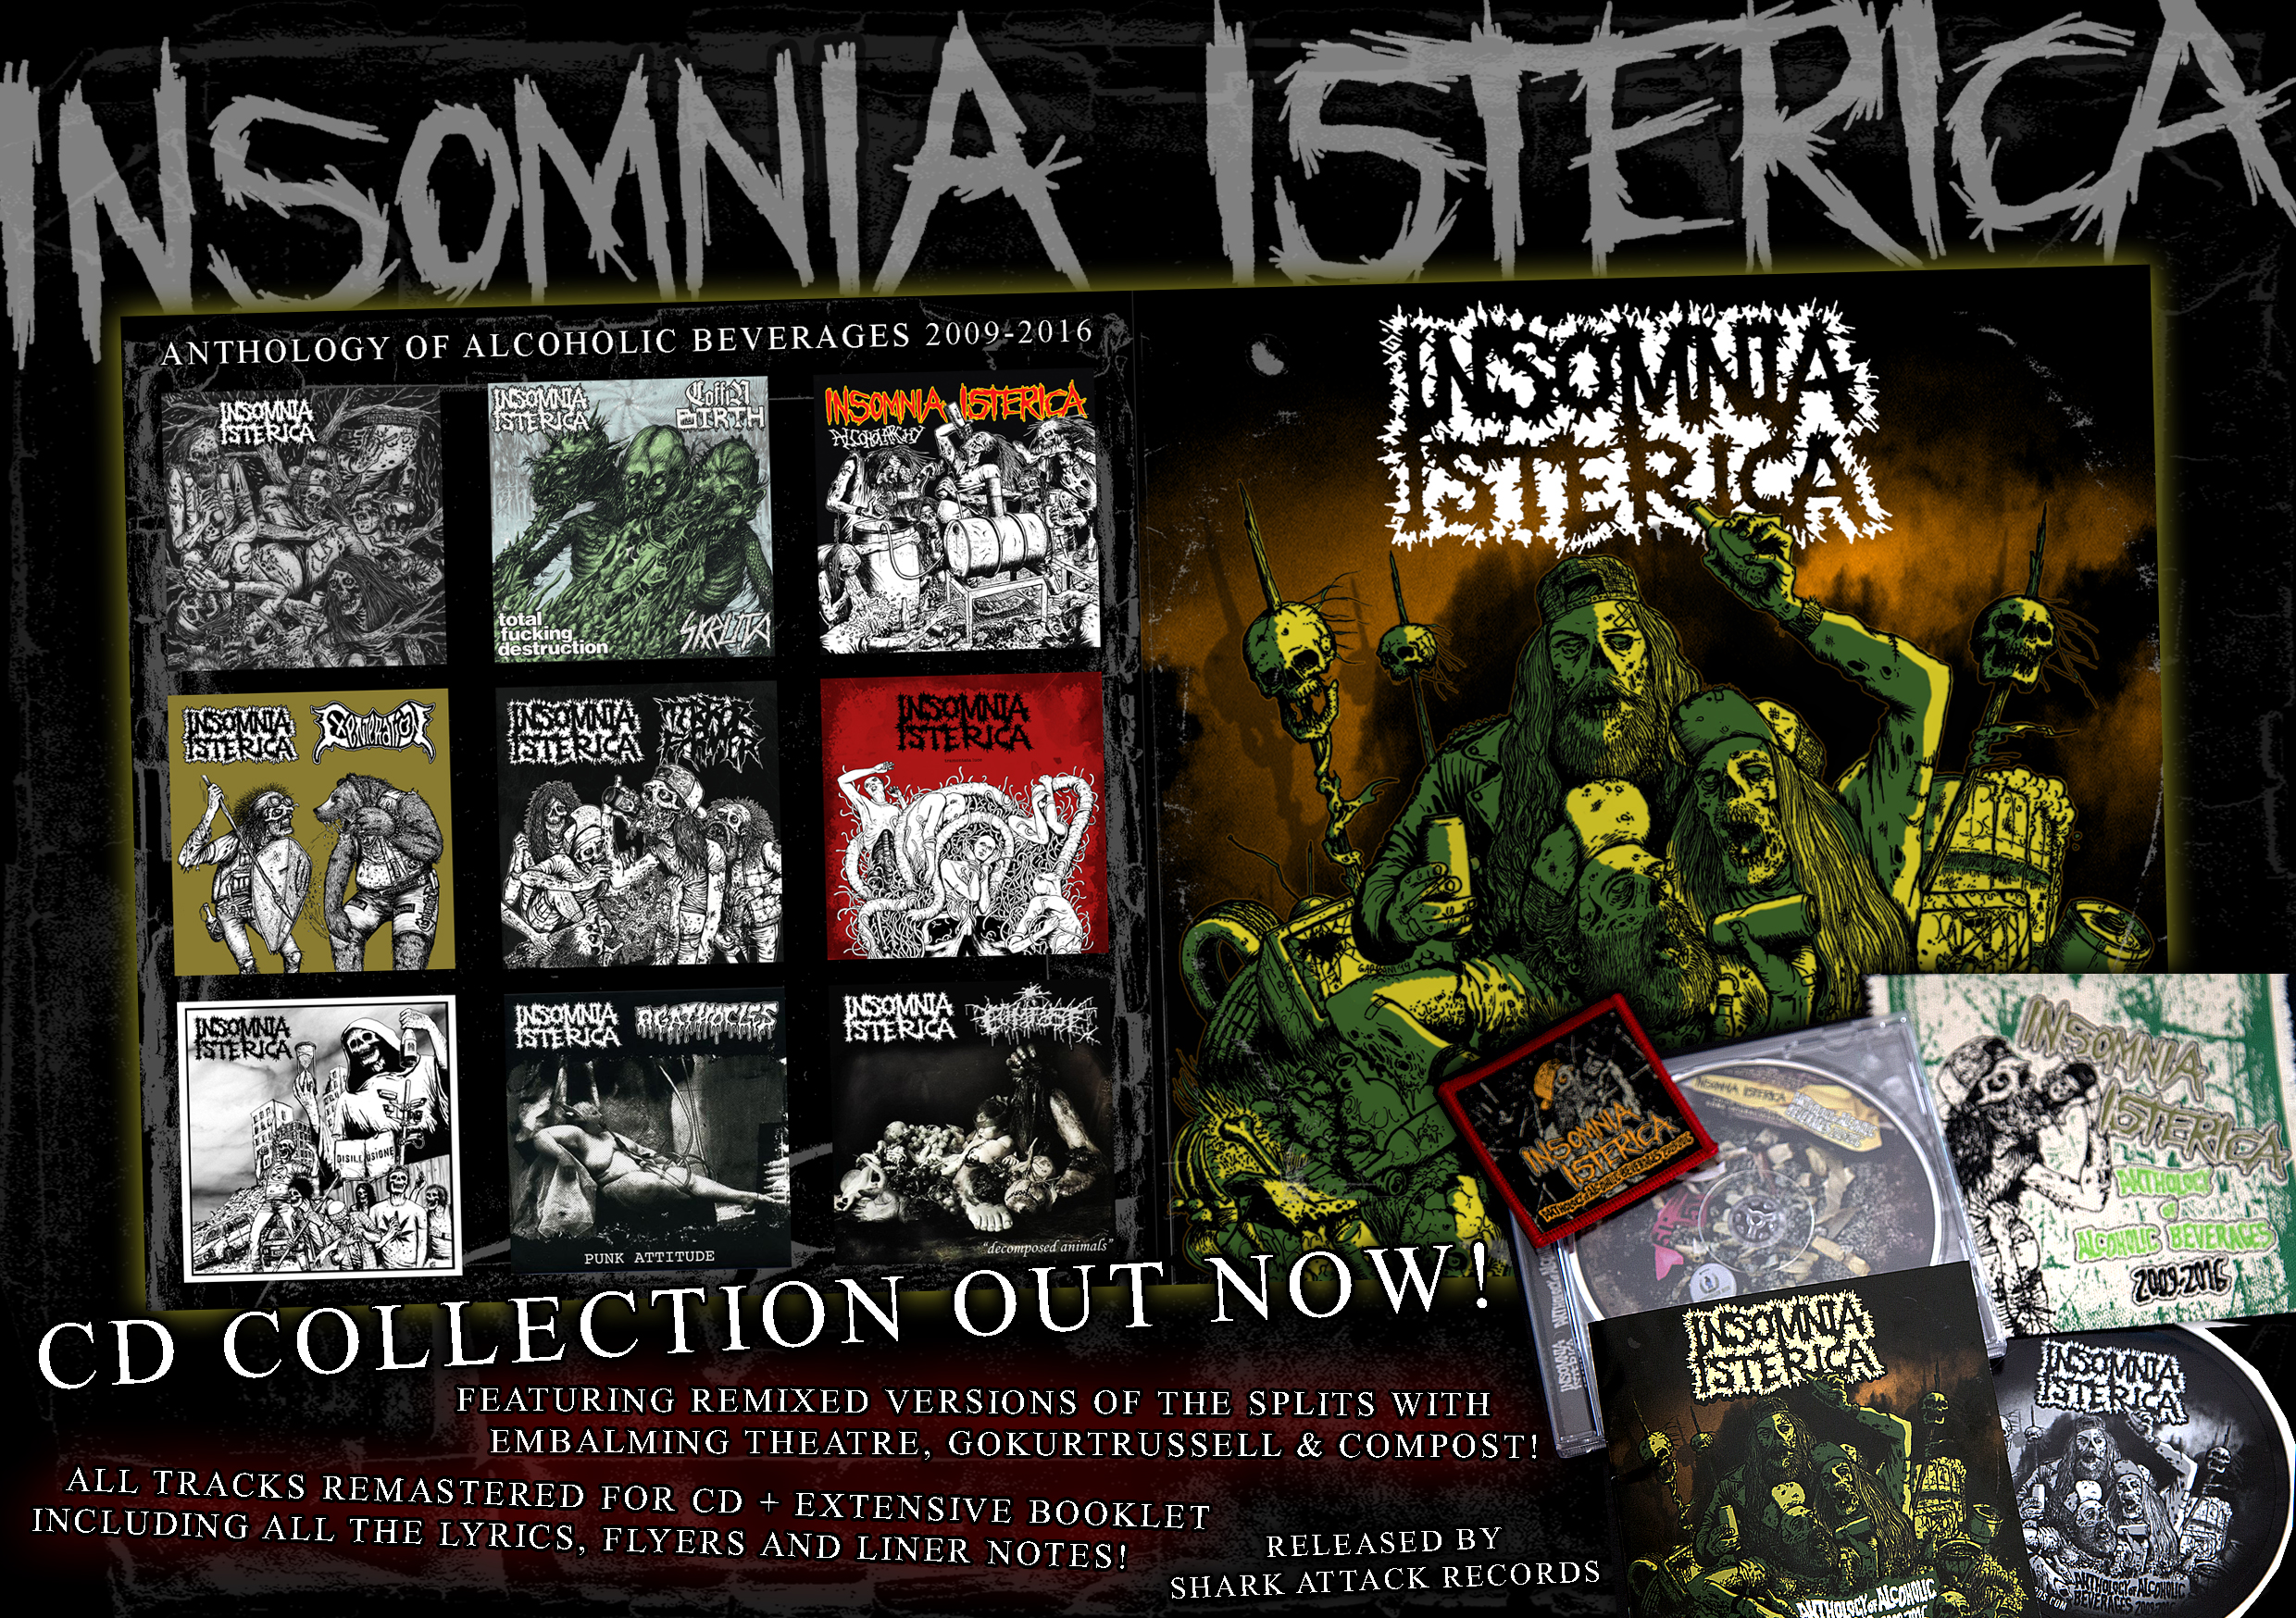 Collection CD outnow